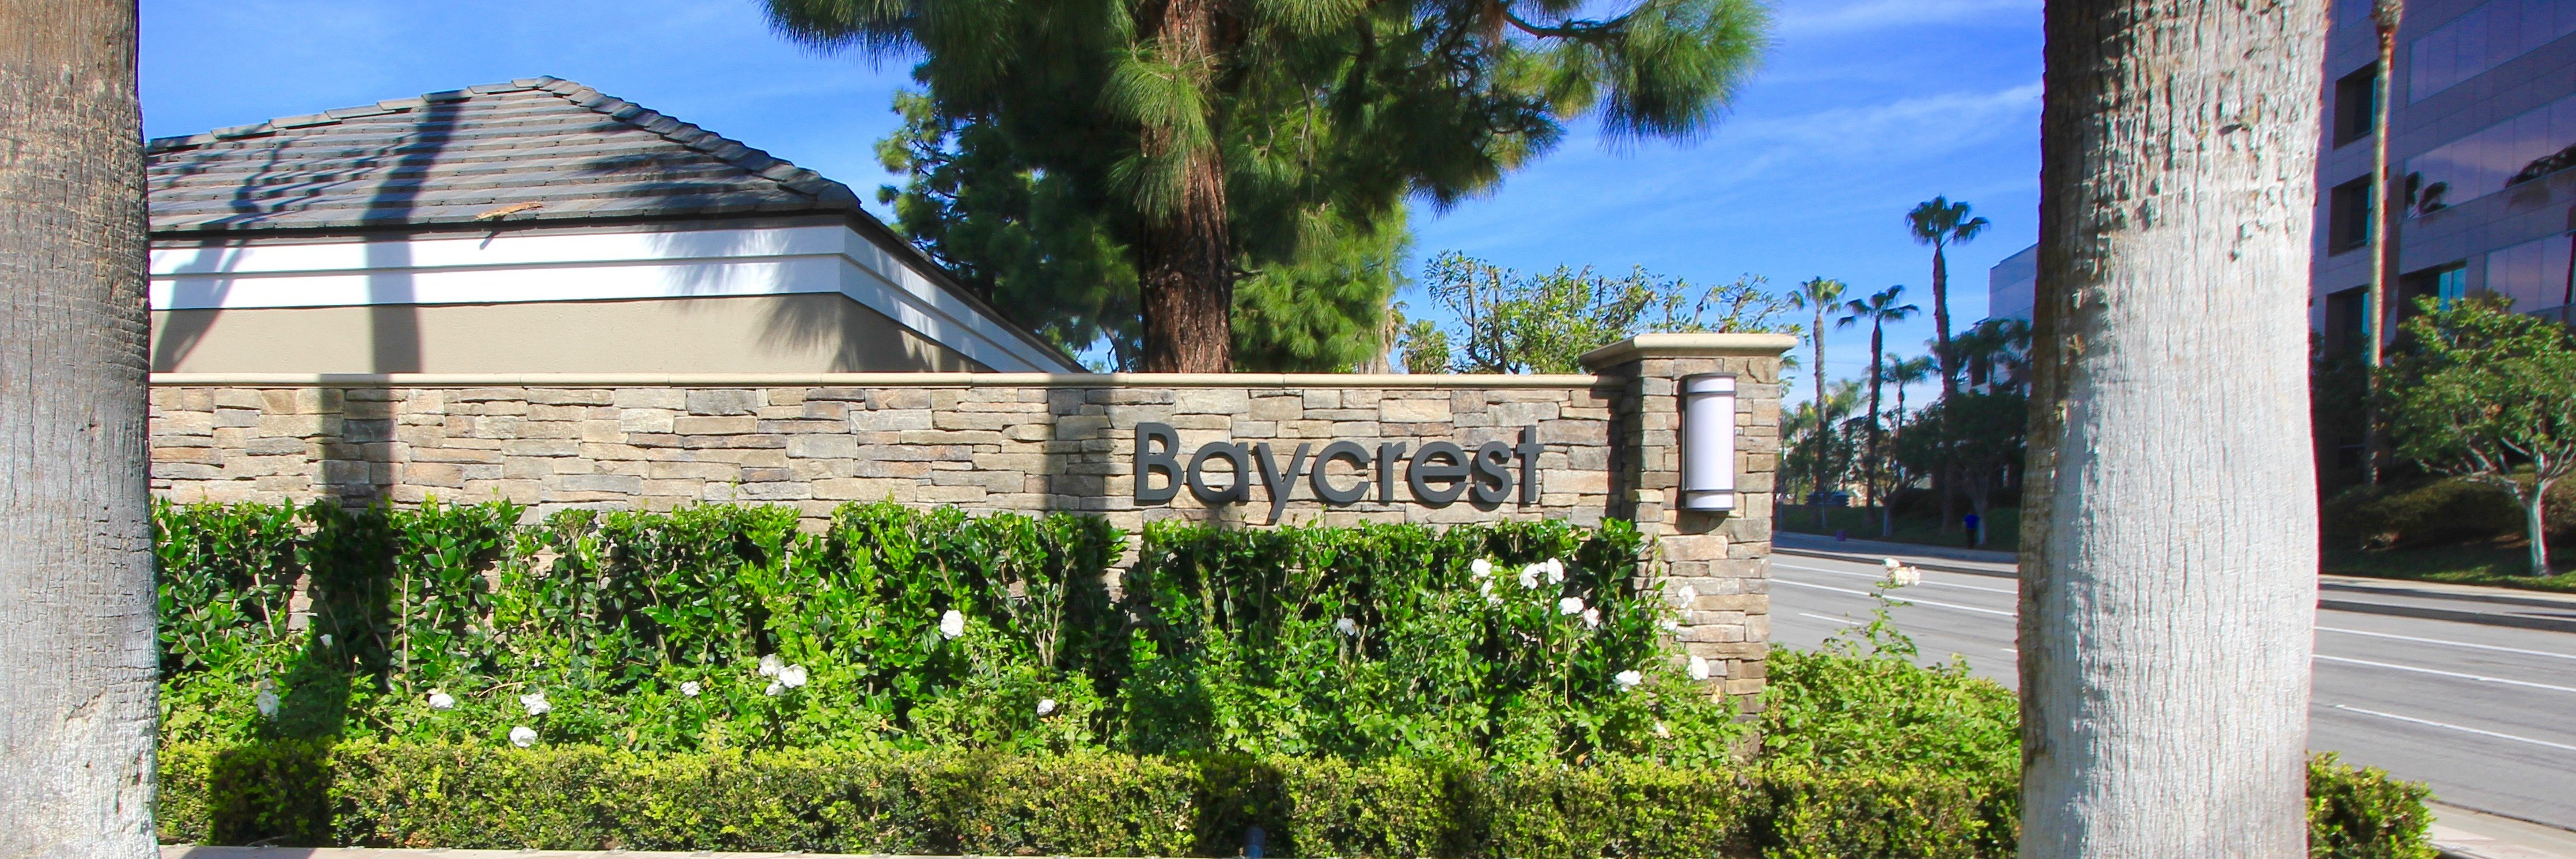 Baycrest is a housing community located in the city of Newport Beach, CA